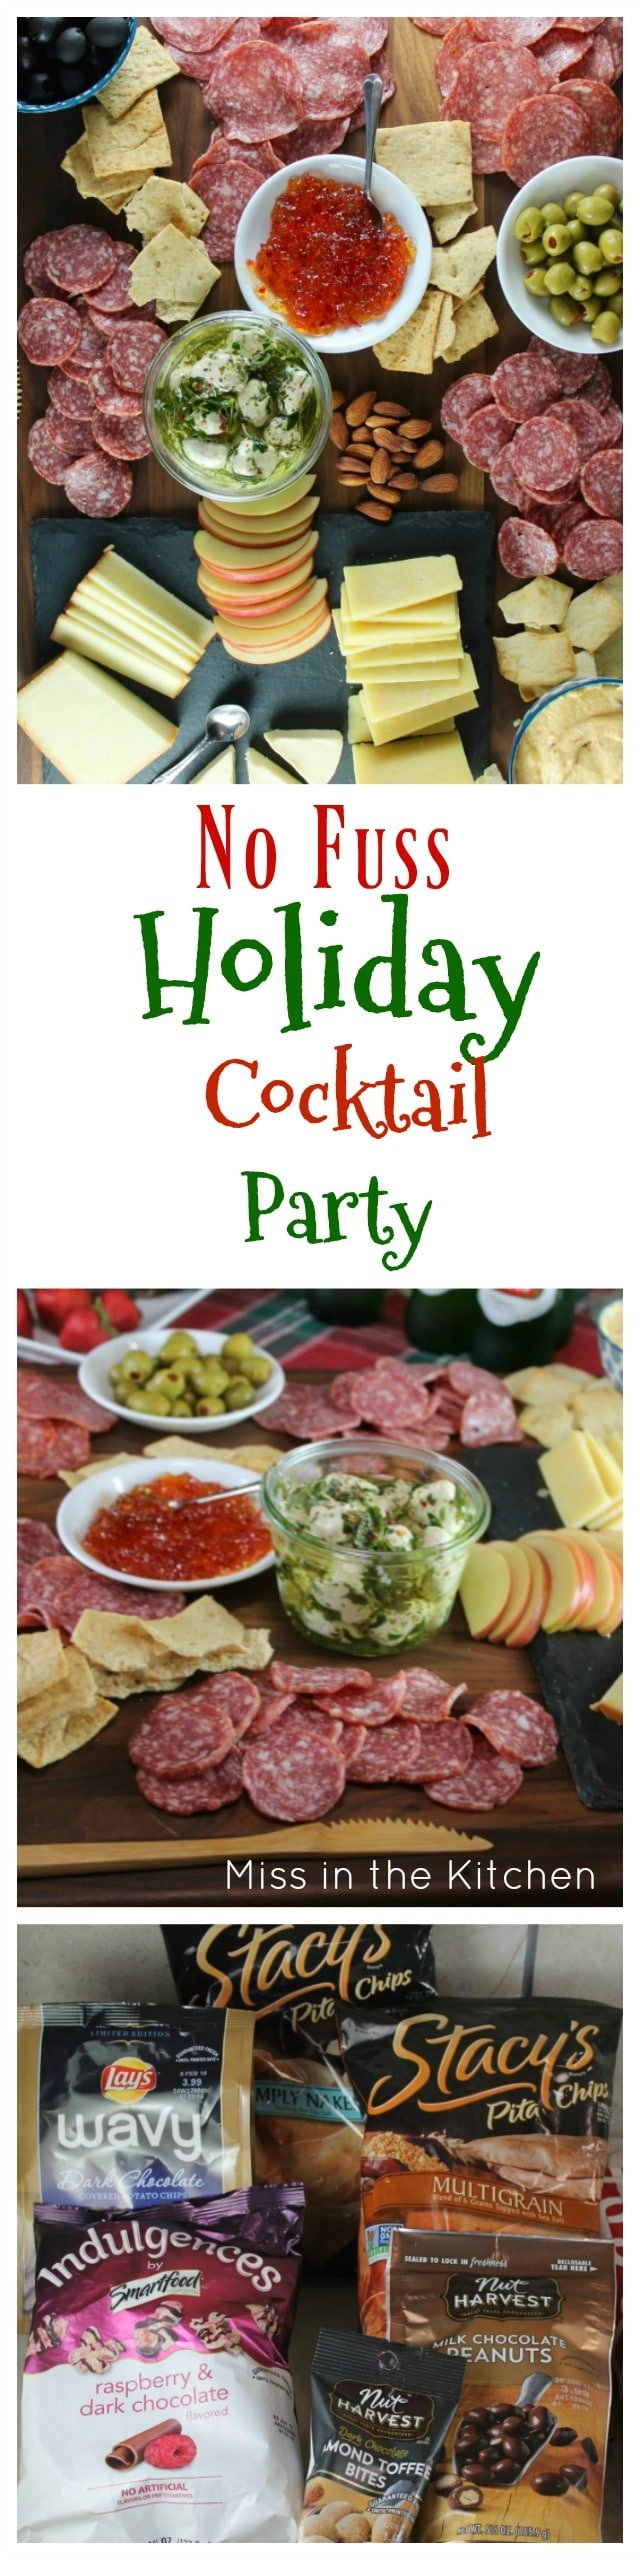 No Fuss Holiday Cocktail Party with Stacy's and MissintheKitchen.com Great party tips, appetizers, drinks and more! #ad